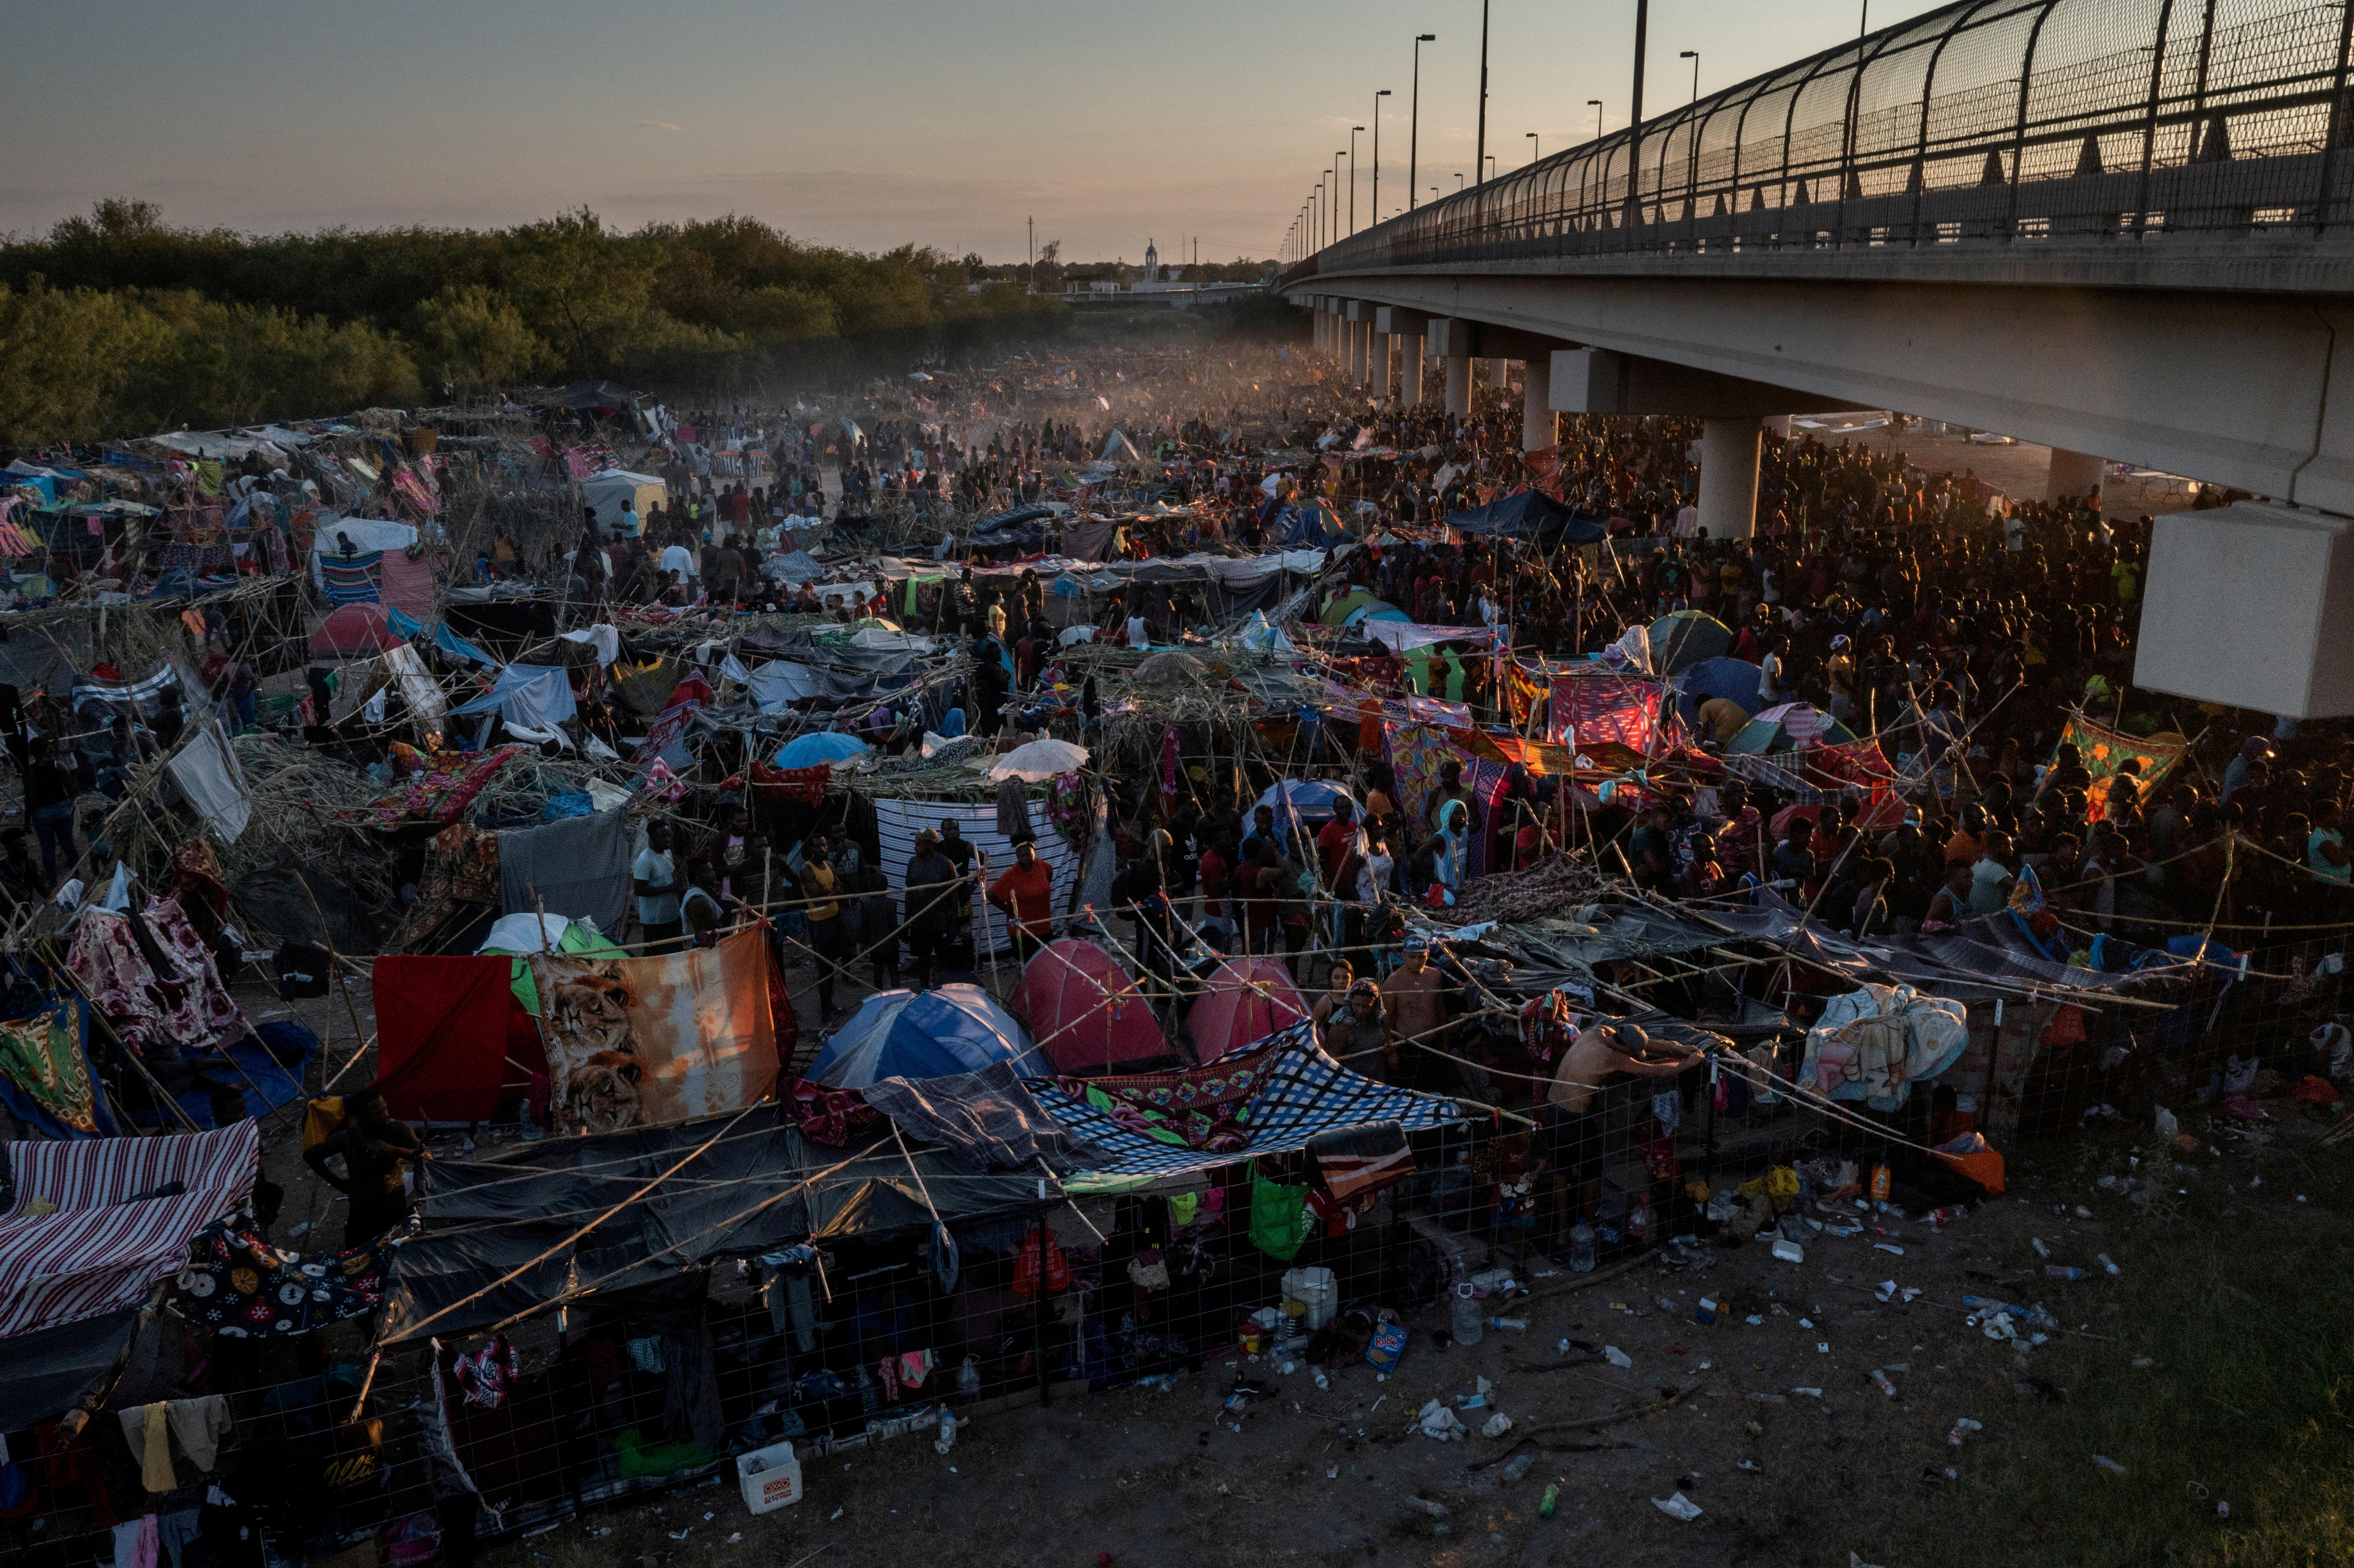 Migrants take shelter along the Del Rio International Bridge at sunset as they await to be processed after crossing the Rio Grande river into the U.S. from Ciudad Acuna in Del Rio, Texas, U.S. September 19, 2021. Picture taken with a drone. REUTERS/Adrees Latif     TPX IMAGES OF THE DAY/File Photo